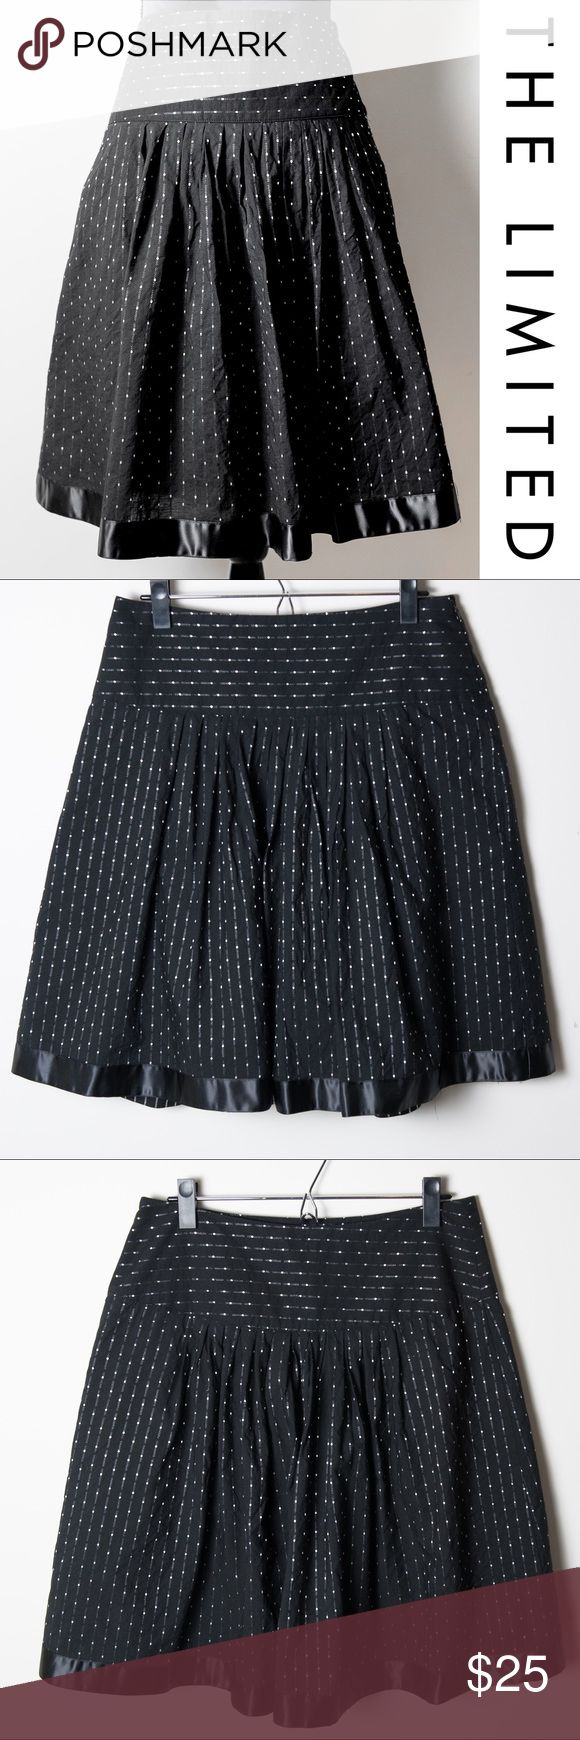 The Limited Skirt Black Dot Pattern Black White Size 6 skirt from The Limited. A-line full black skirt with off-white dot pattern. Silk trim across the bottom. Linned. Machine wash cold gentle cycle. Tumble dry low, warm iron if needed. Shell - 90% cotton, 10% polyester. Lining 100% cotton. The Limited Skirts A-Line or Full